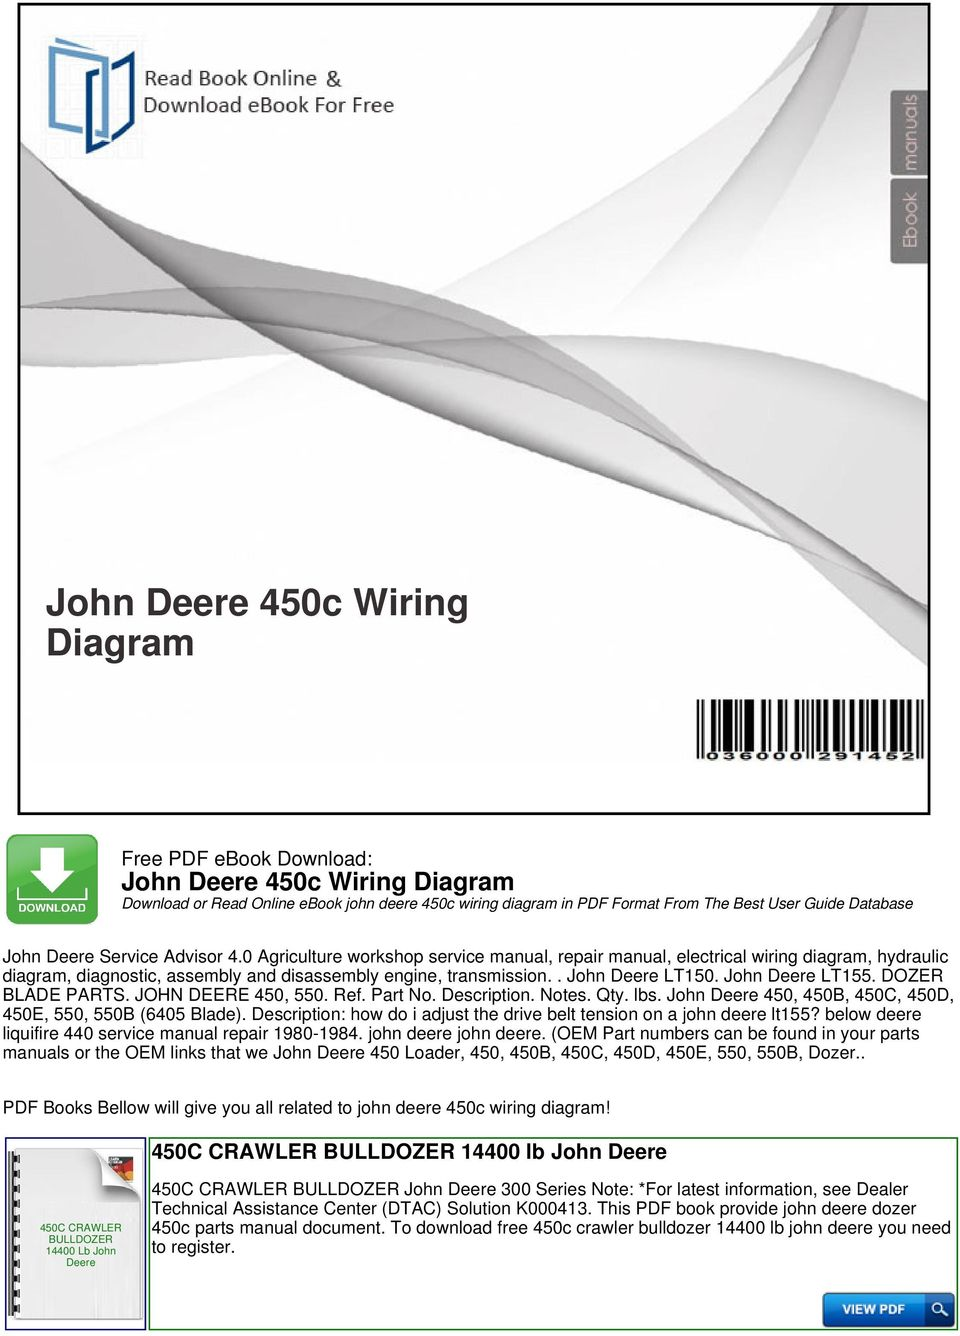 John Deere 450c Wiring Diagram - PDF on